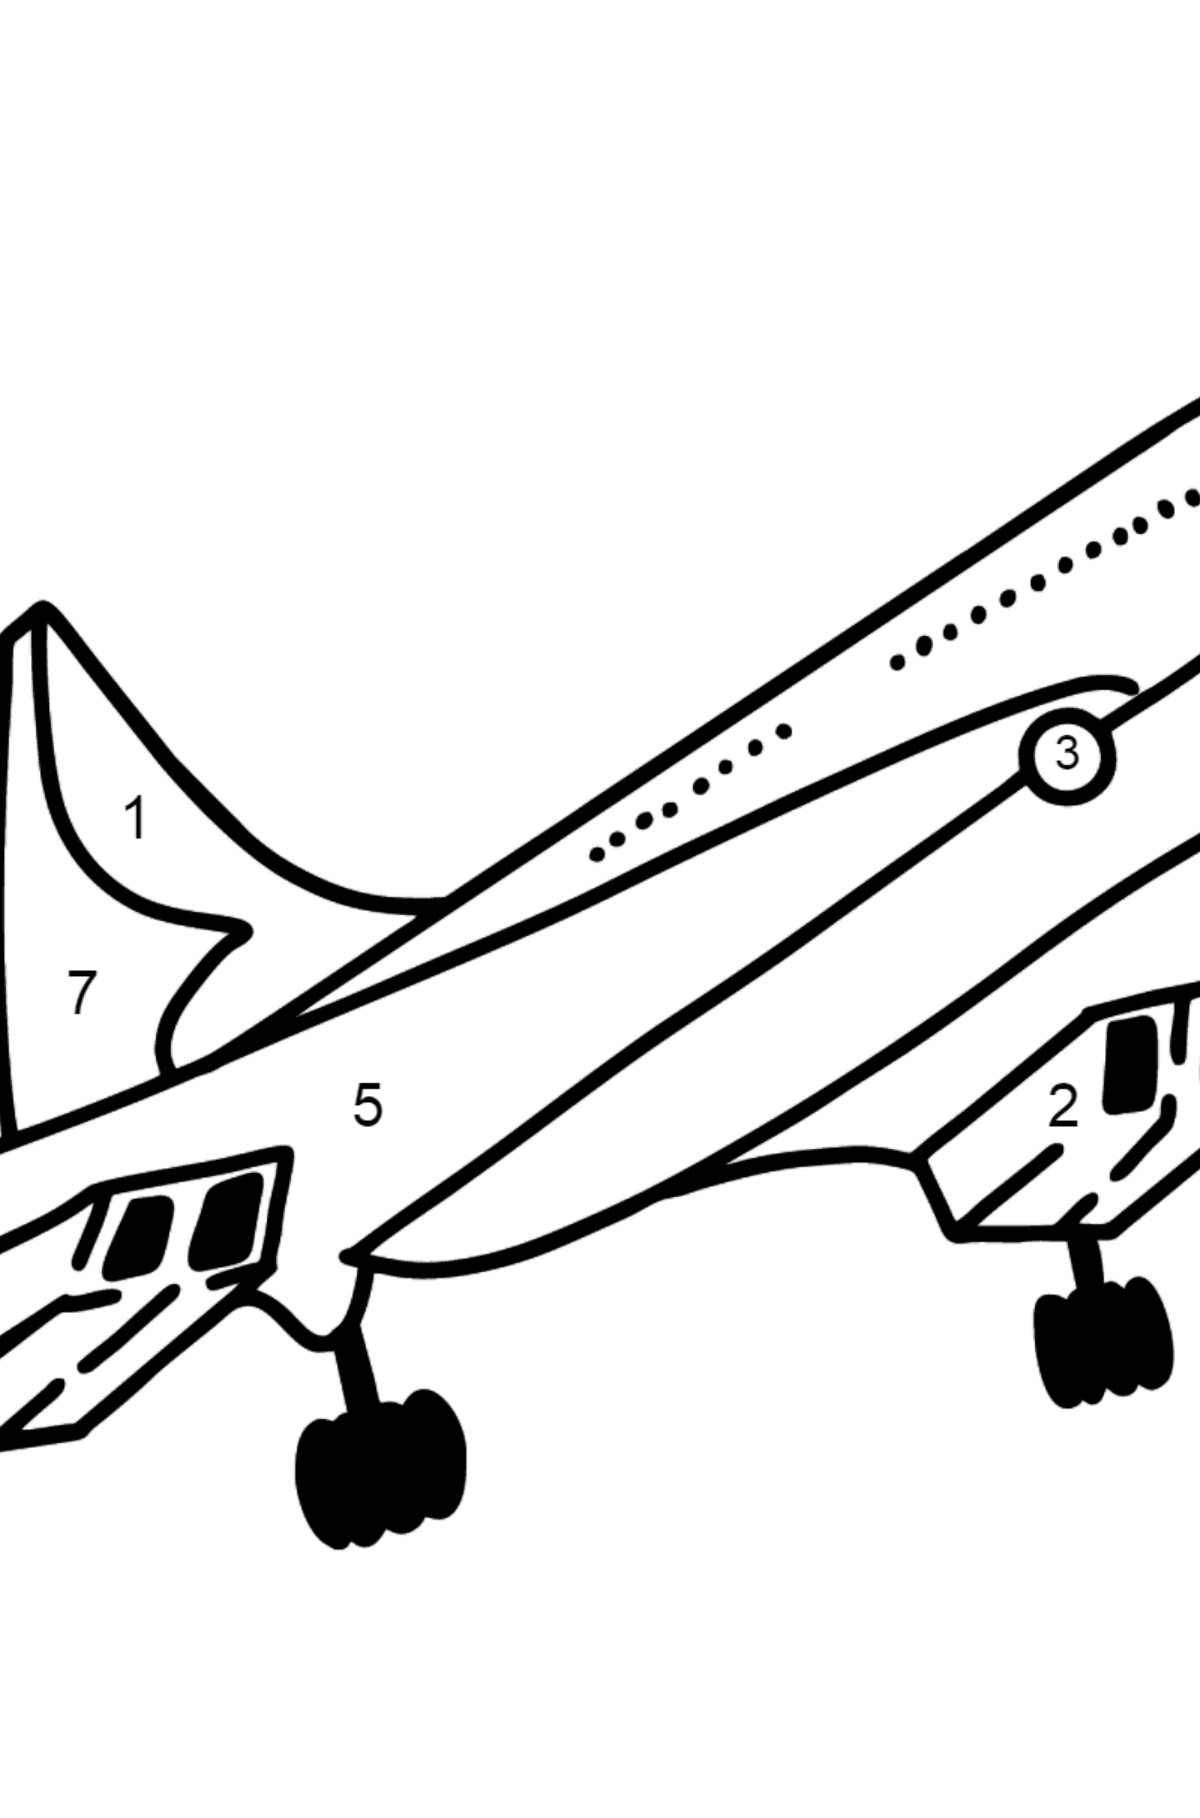 Concorde coloring page - Coloring by Numbers for Kids